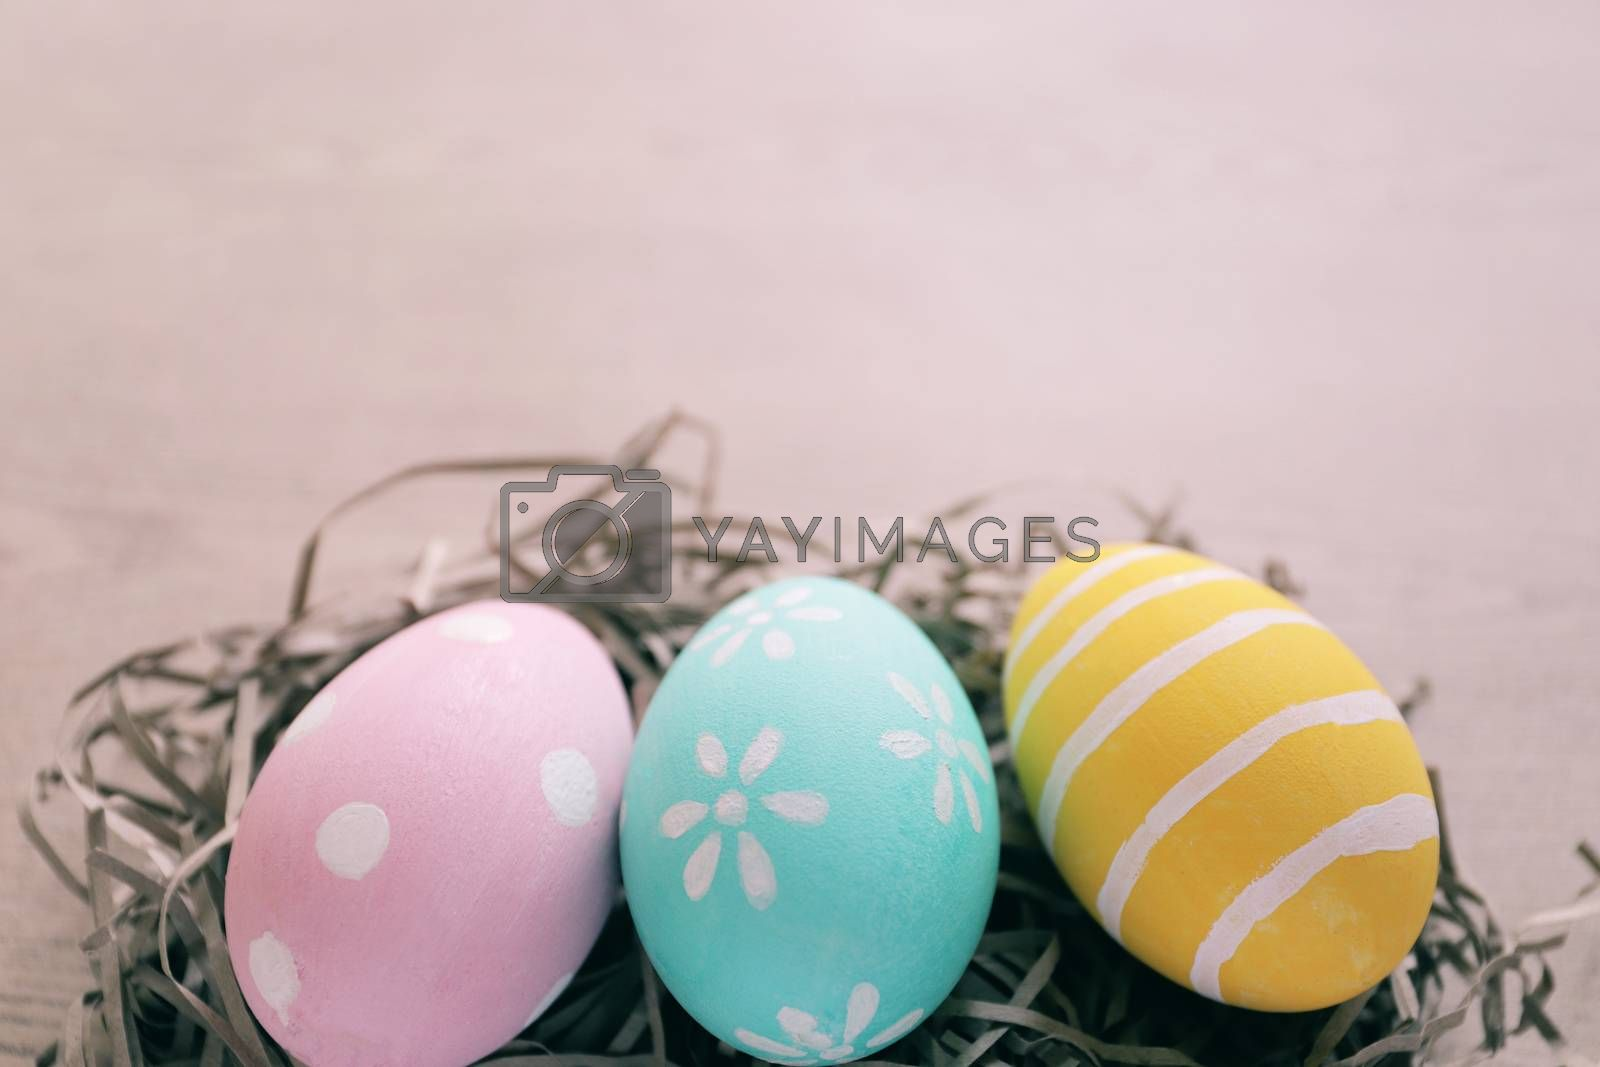 Royalty free image of Pastel and colorful easter eggs on nest with wooden background a by nuchylee